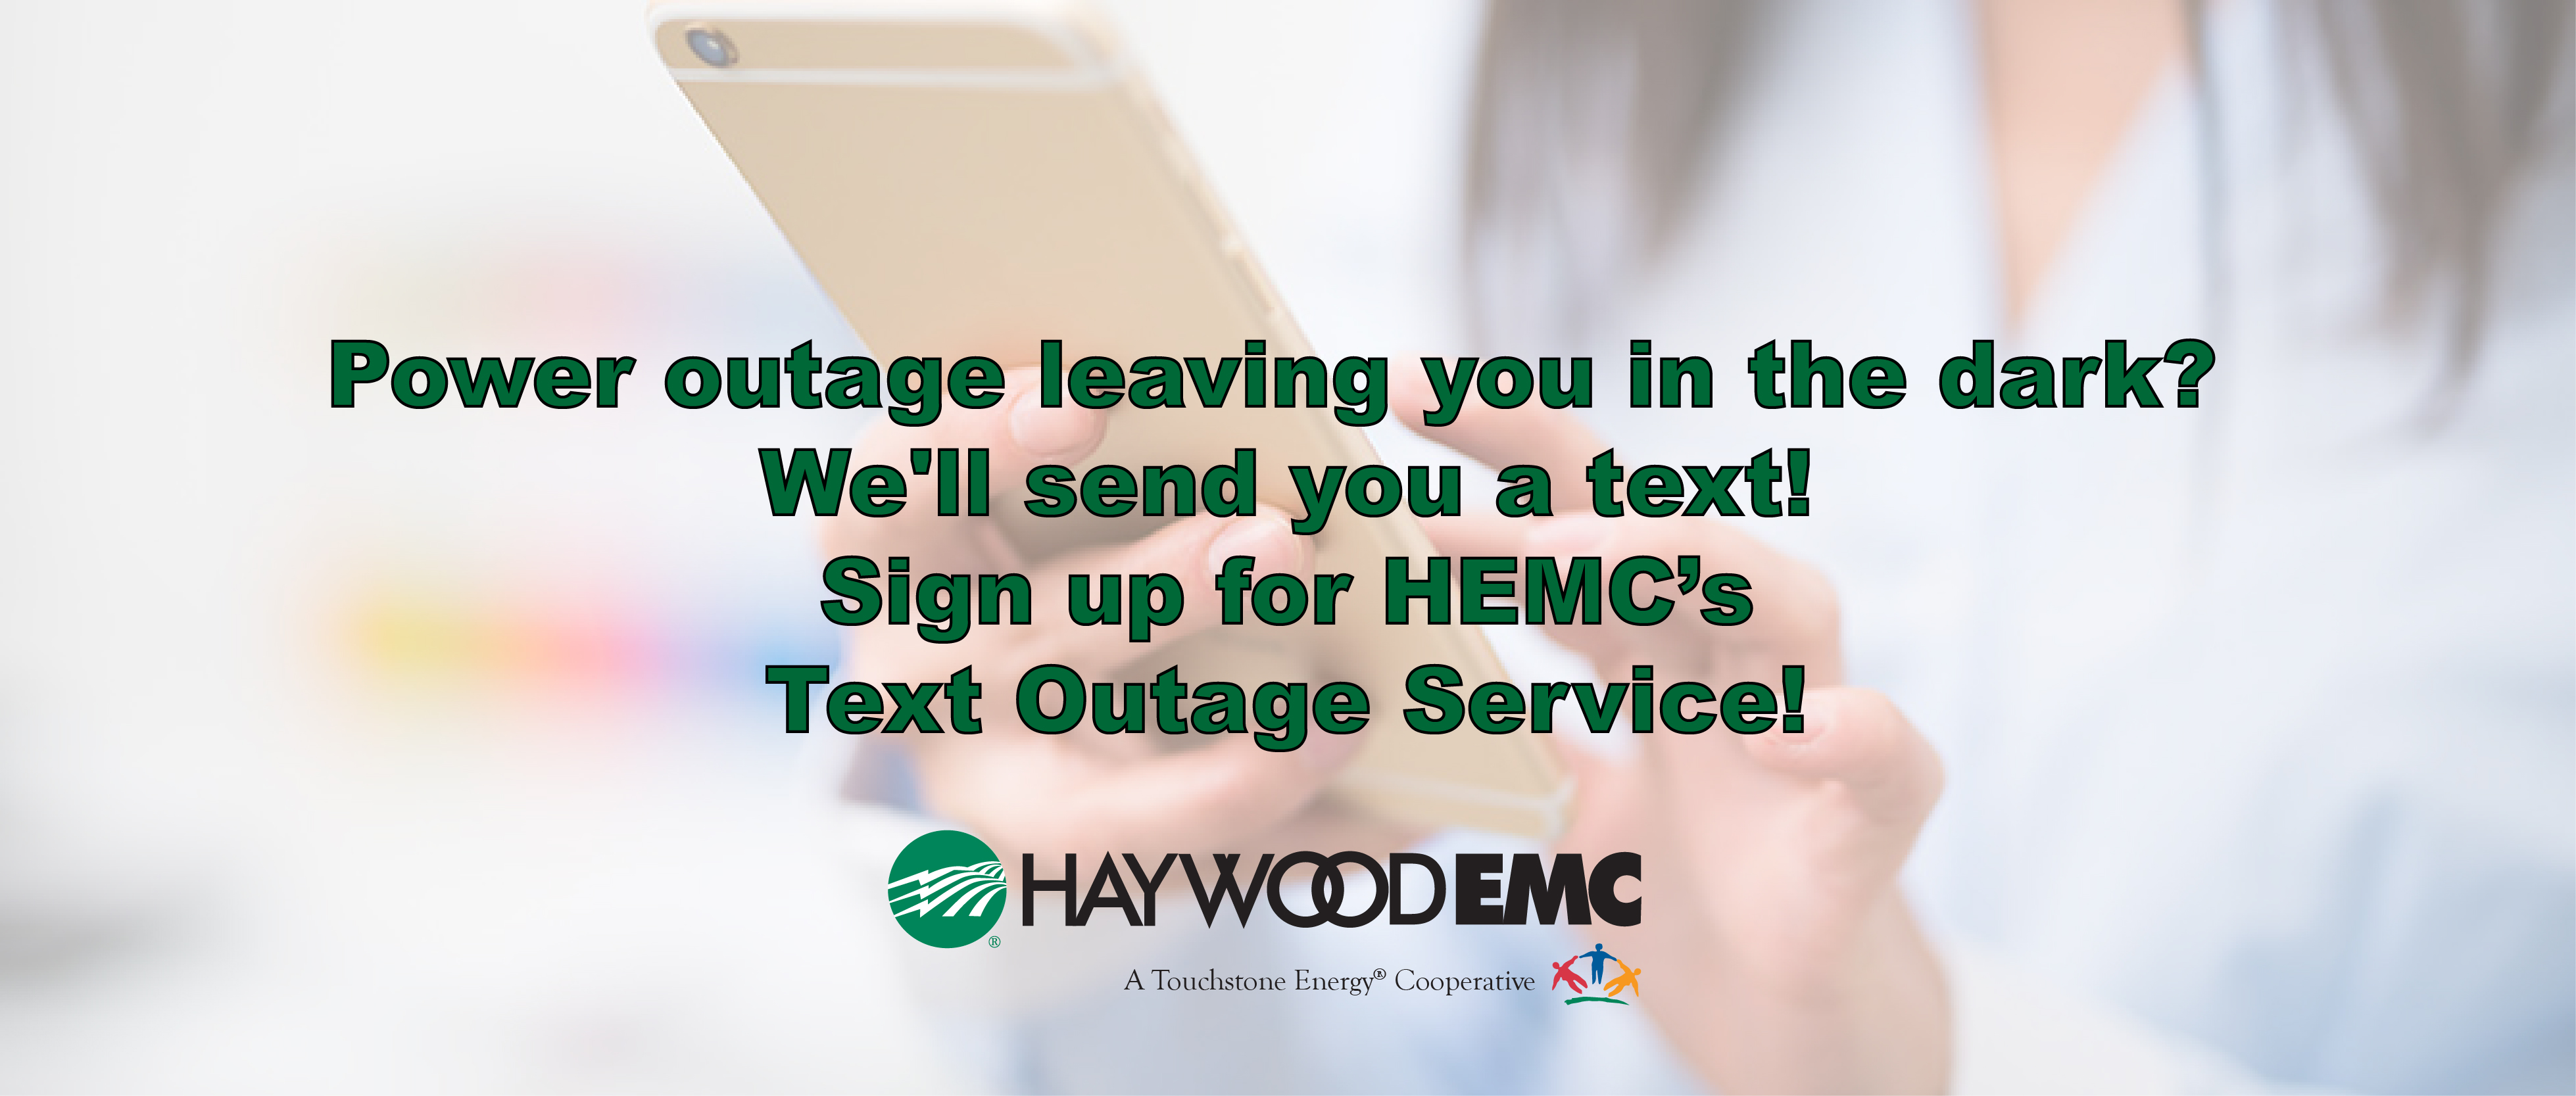 https://haywoodemc.com/sites/haywoodemc/files/revslider/image/Text%20Outage%20slide-01.jpg